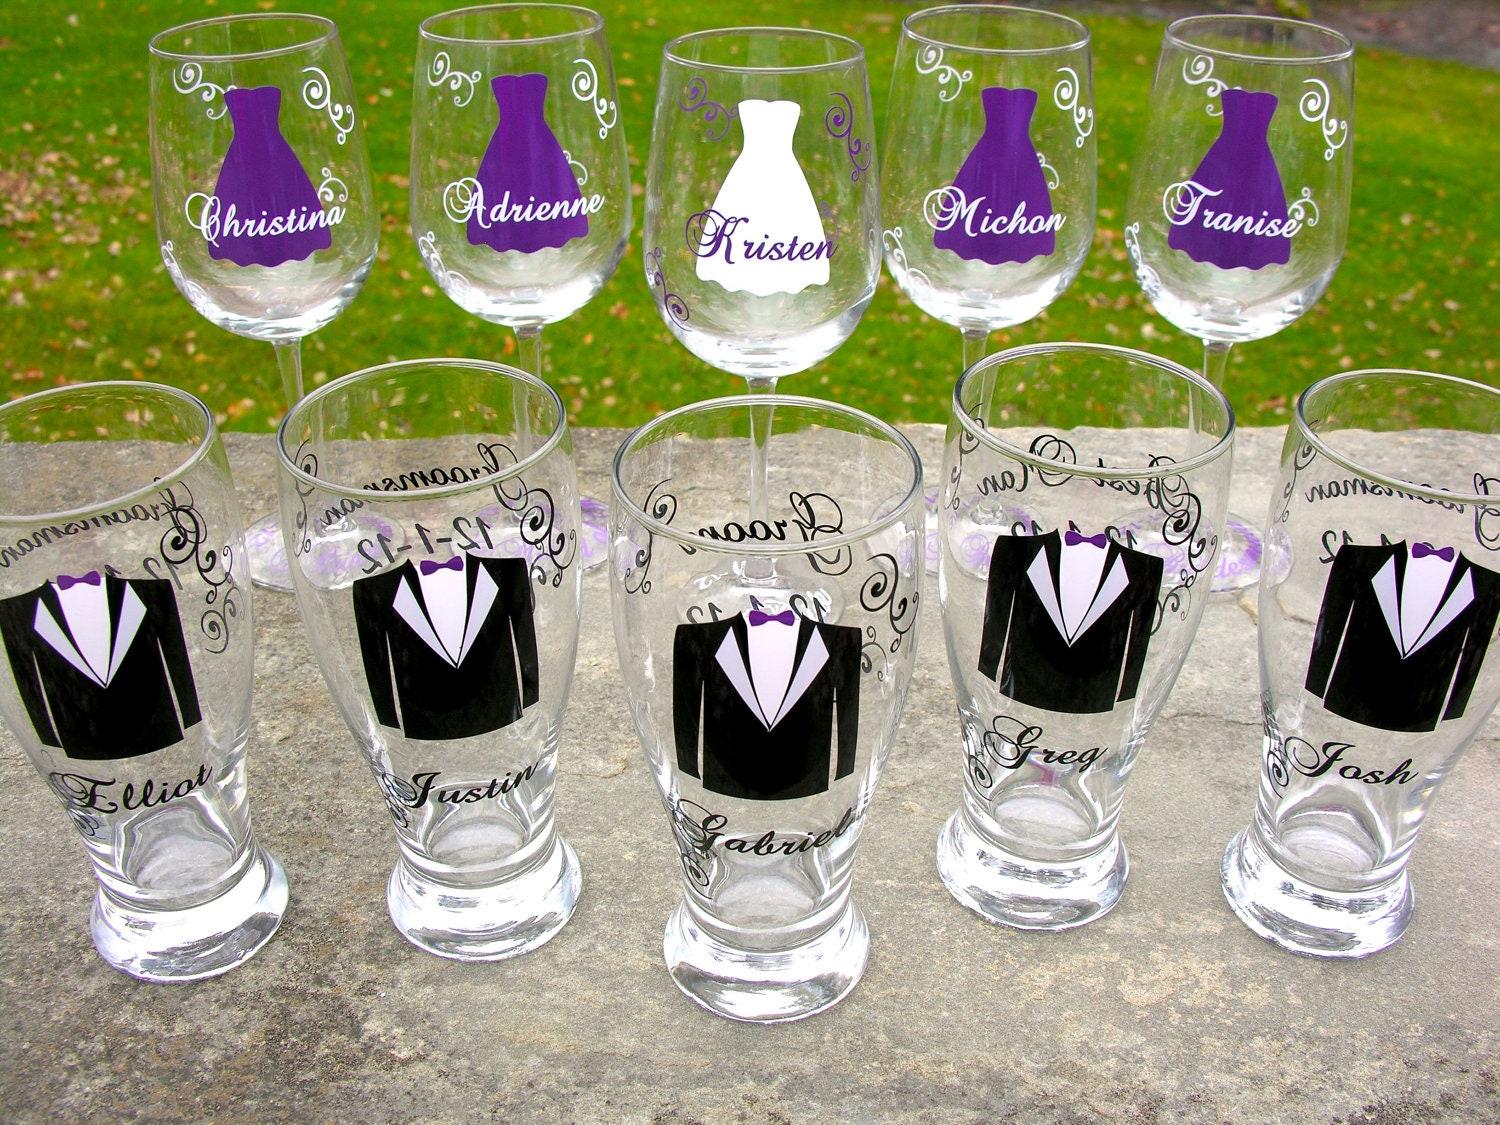 Wedding Gift Glasses Suggestions : Wedding party glasses wine glasses and beer by WaterfallDesigns